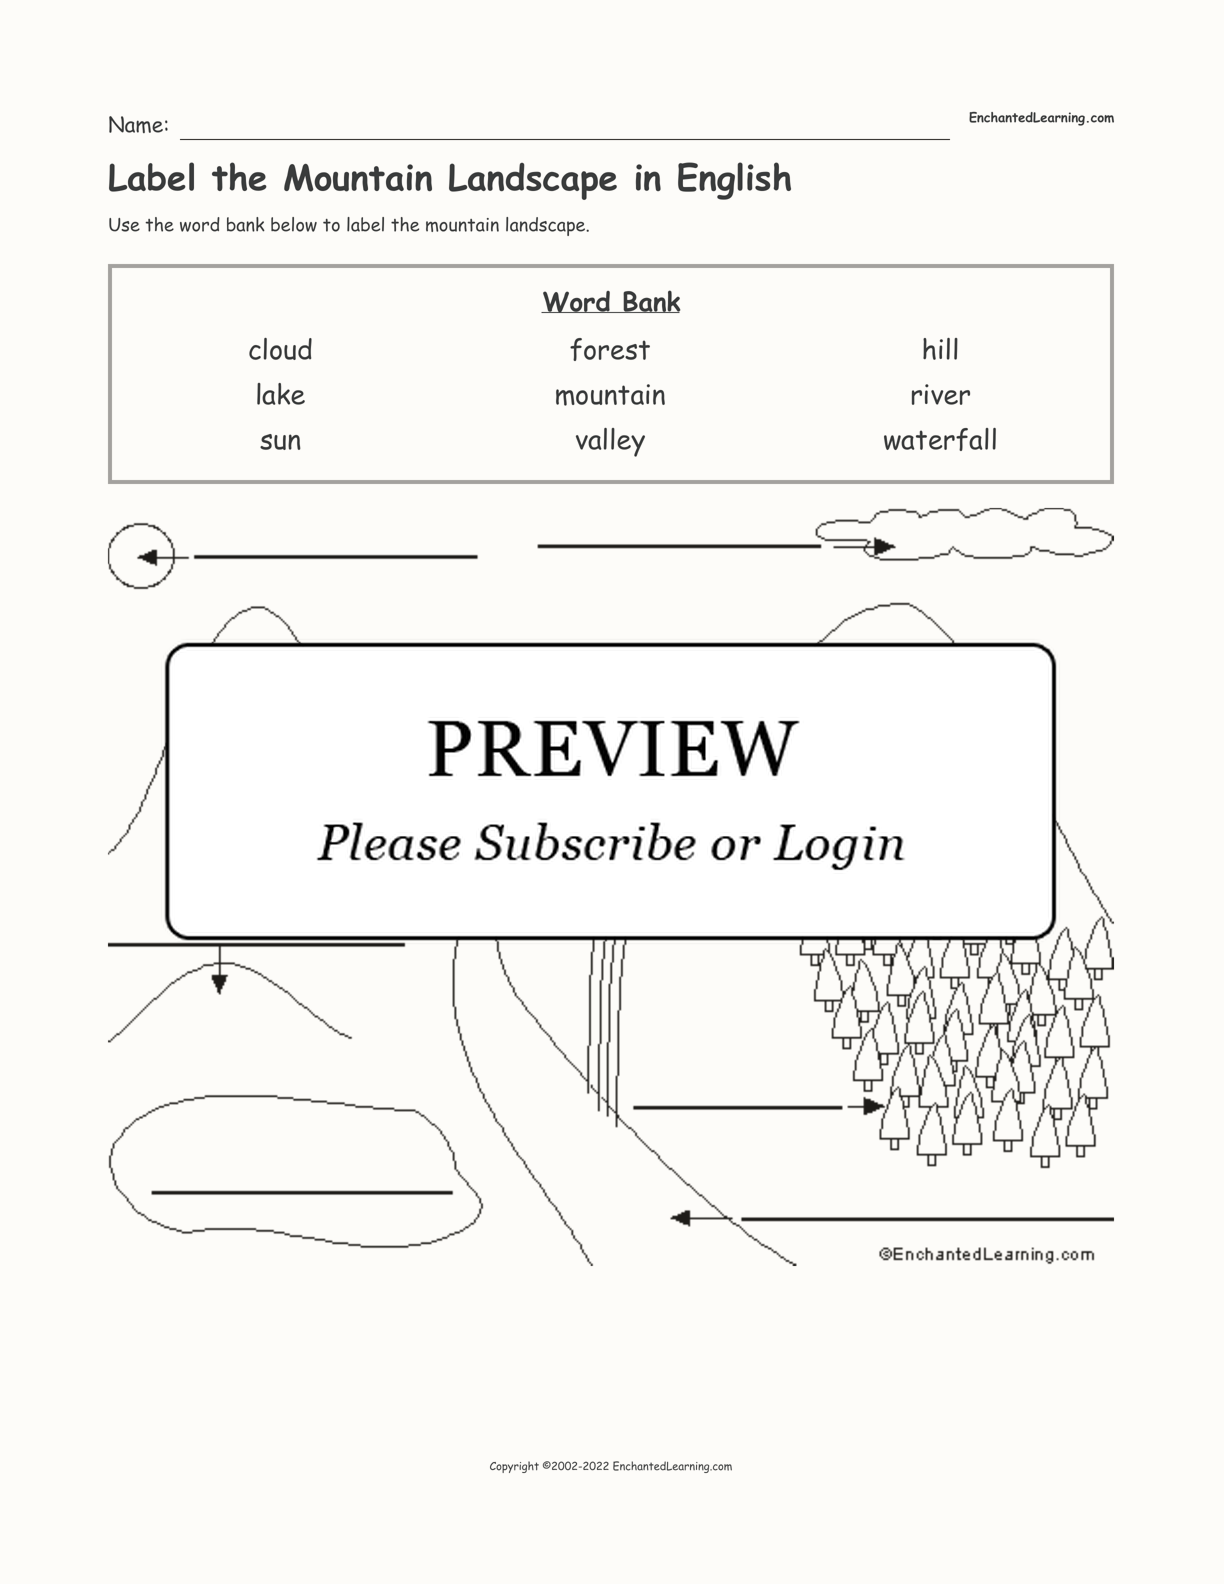 Label the Mountain Landscape in English interactive worksheet page 1